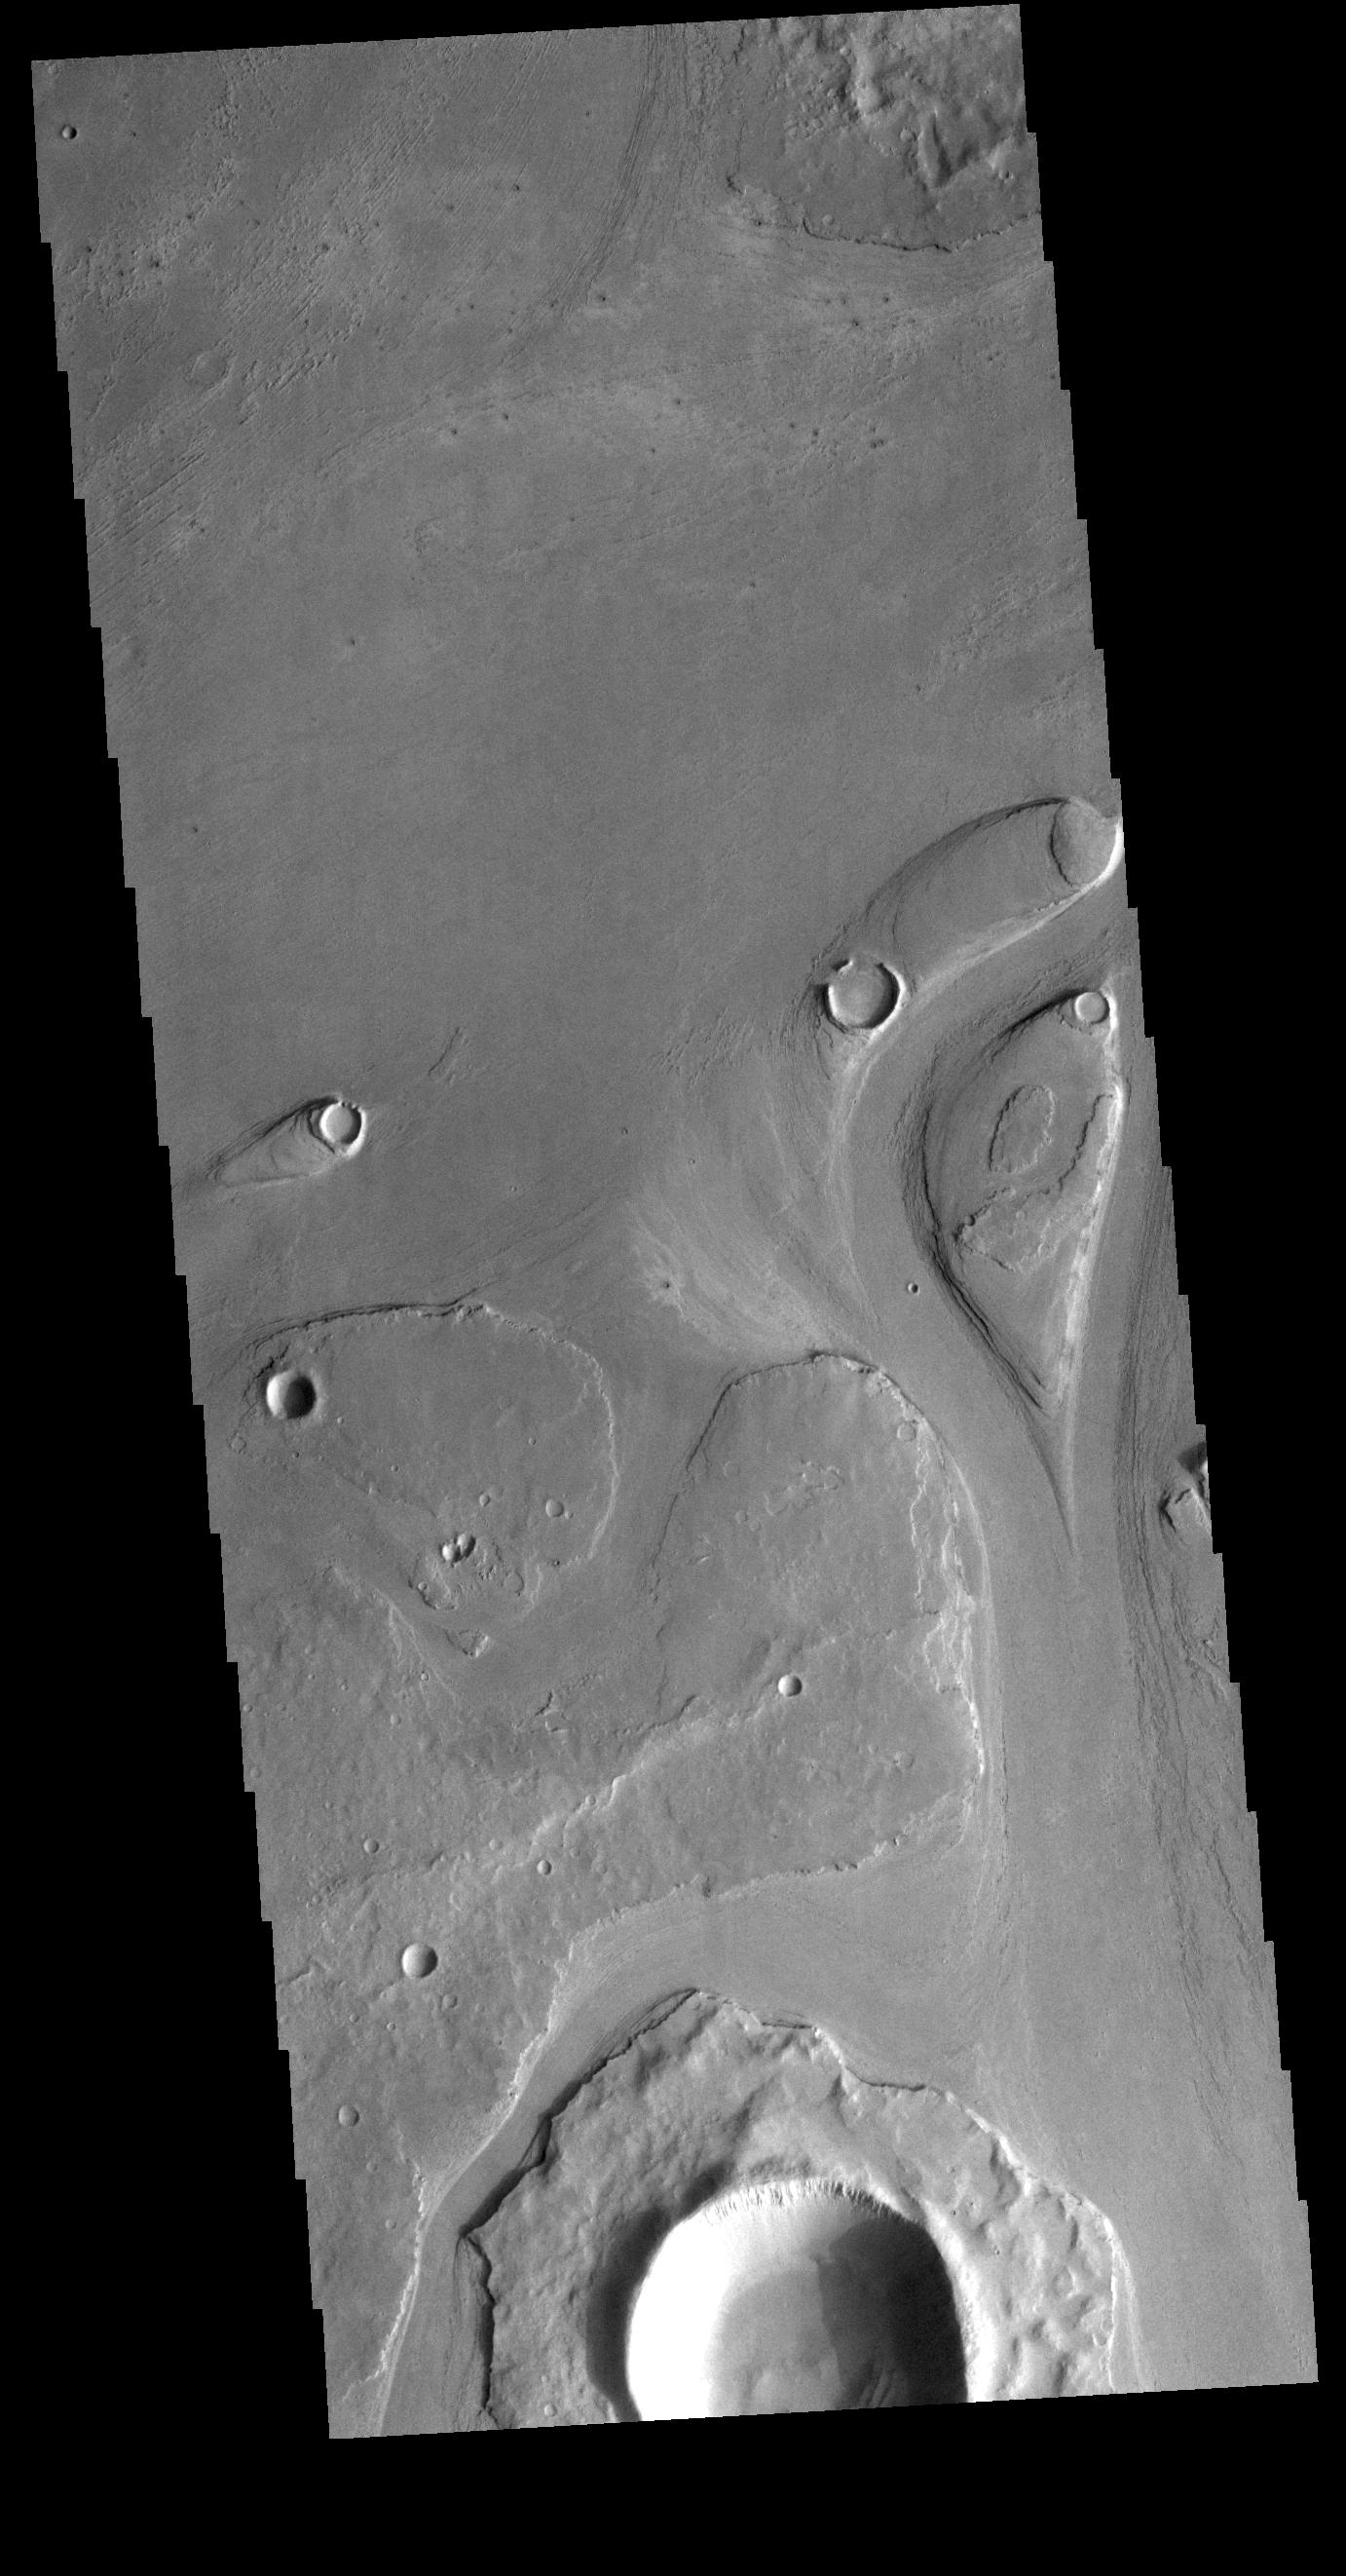 This image from NASAs Mars Odyssey shows part of Athabasca Valles. Several streamlined islands are visible, with tails pointing downstream.